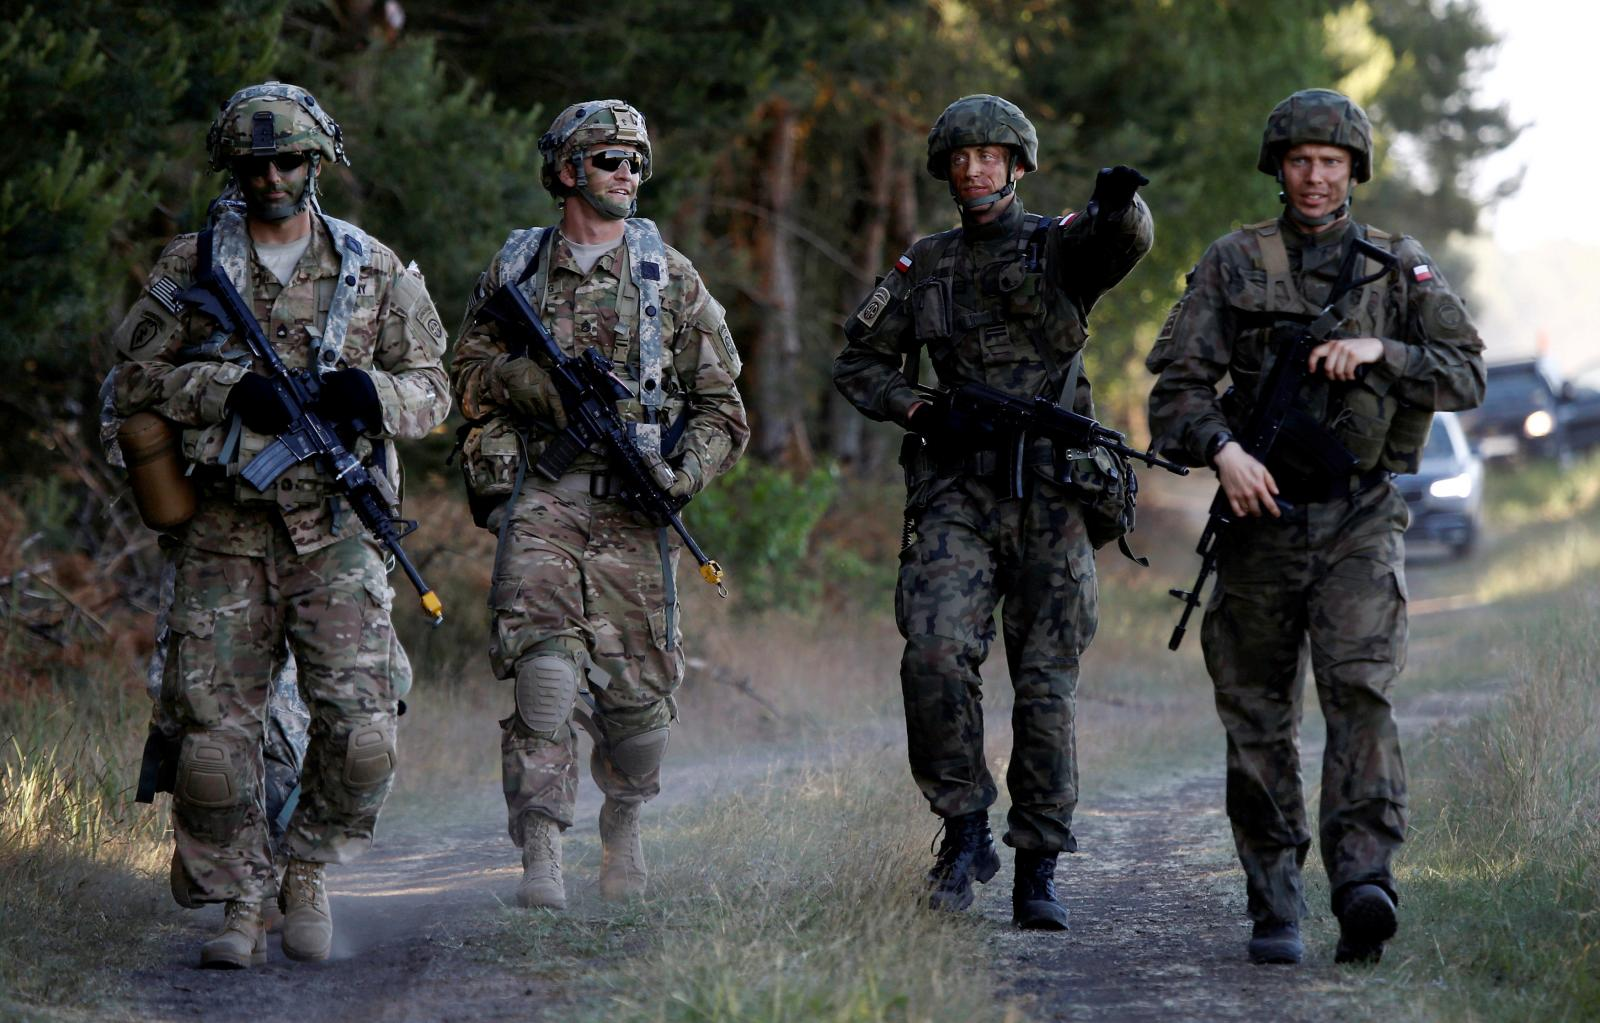 Polish and U.S. Soliders training together